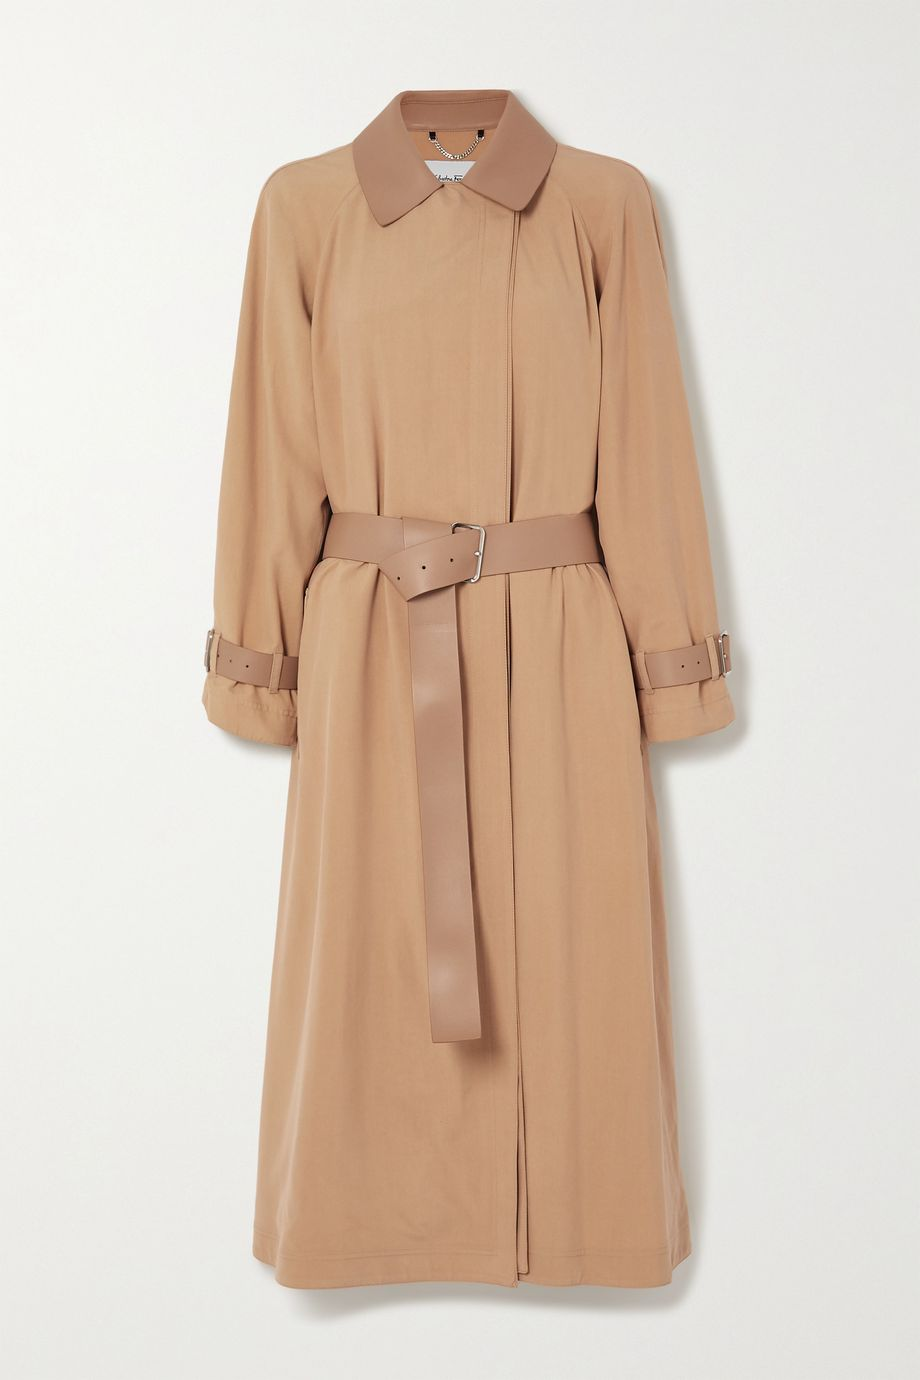 Salvatore Ferragamo Belted leather-trimmed silk trench coat